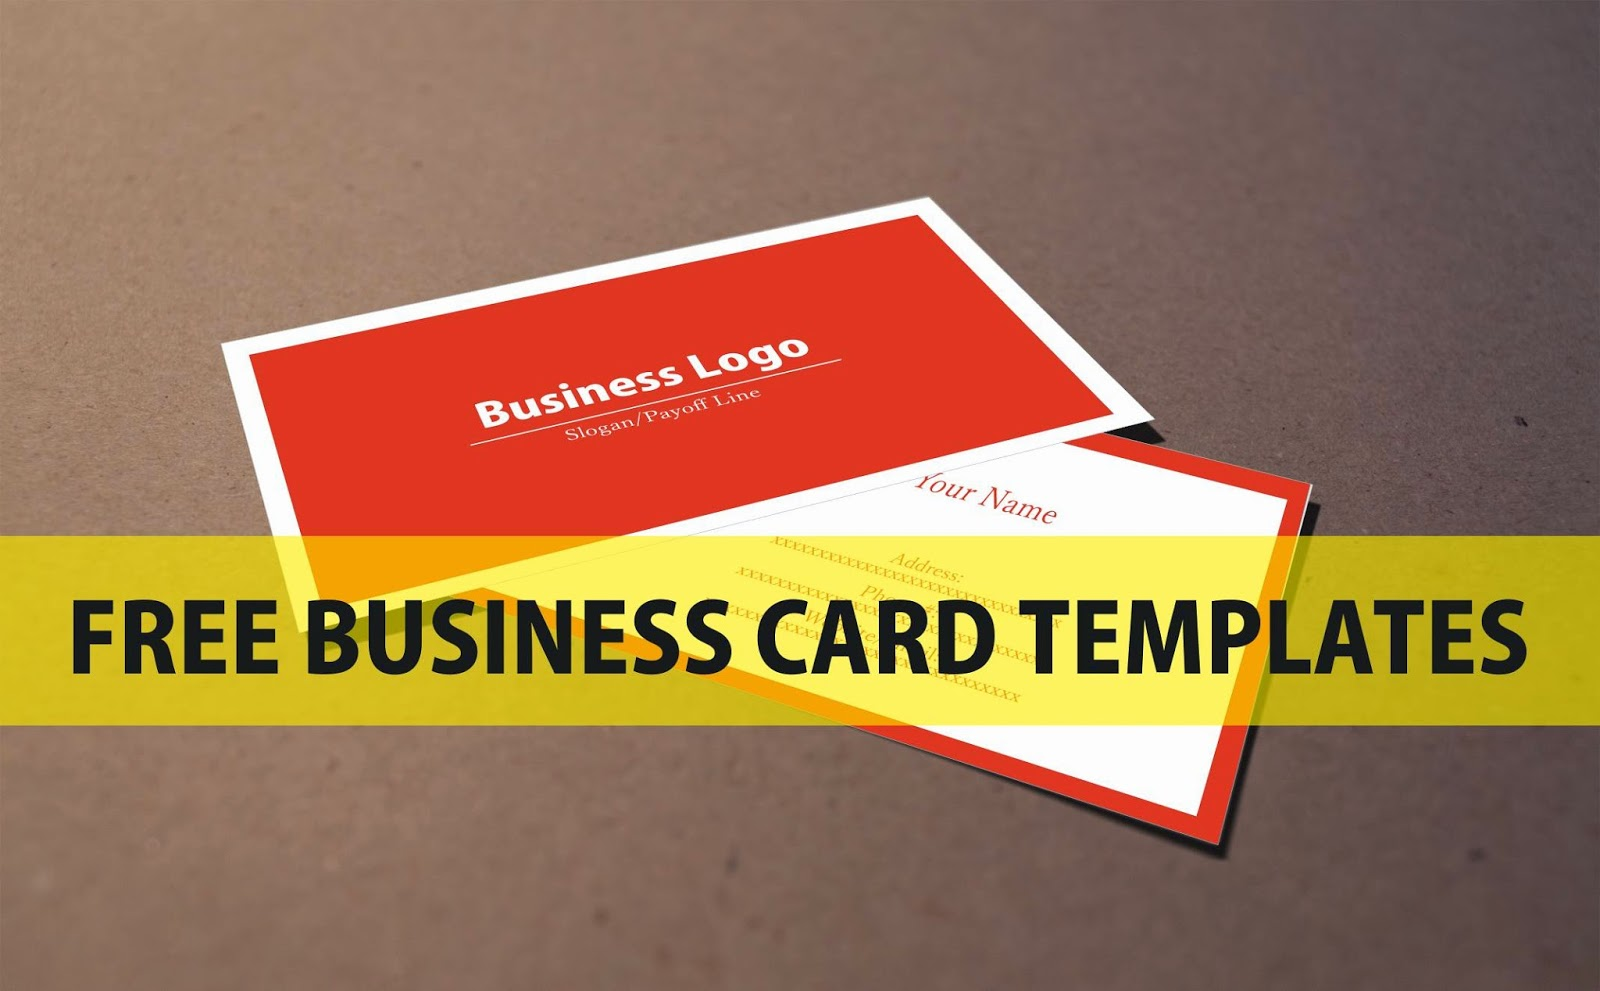 Free business card template download coreldraw file a graphic free business card template download coreldraw file reheart Image collections